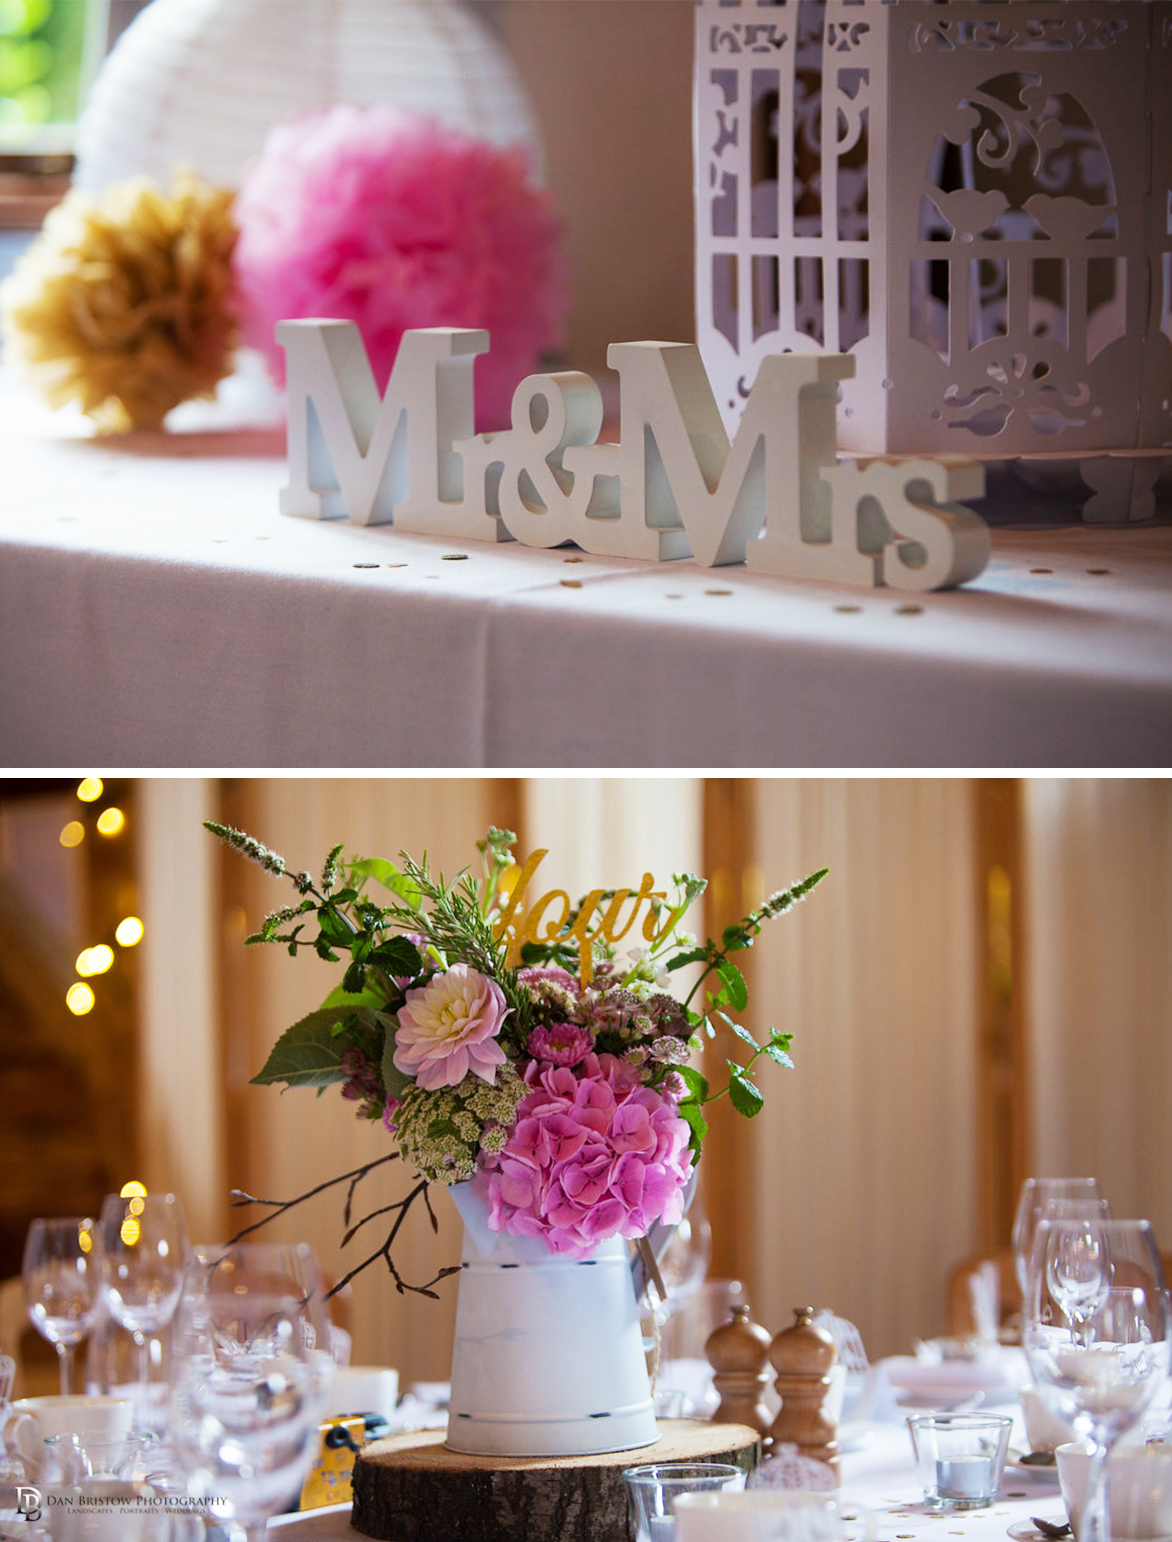 Mr and Mrs table decorations